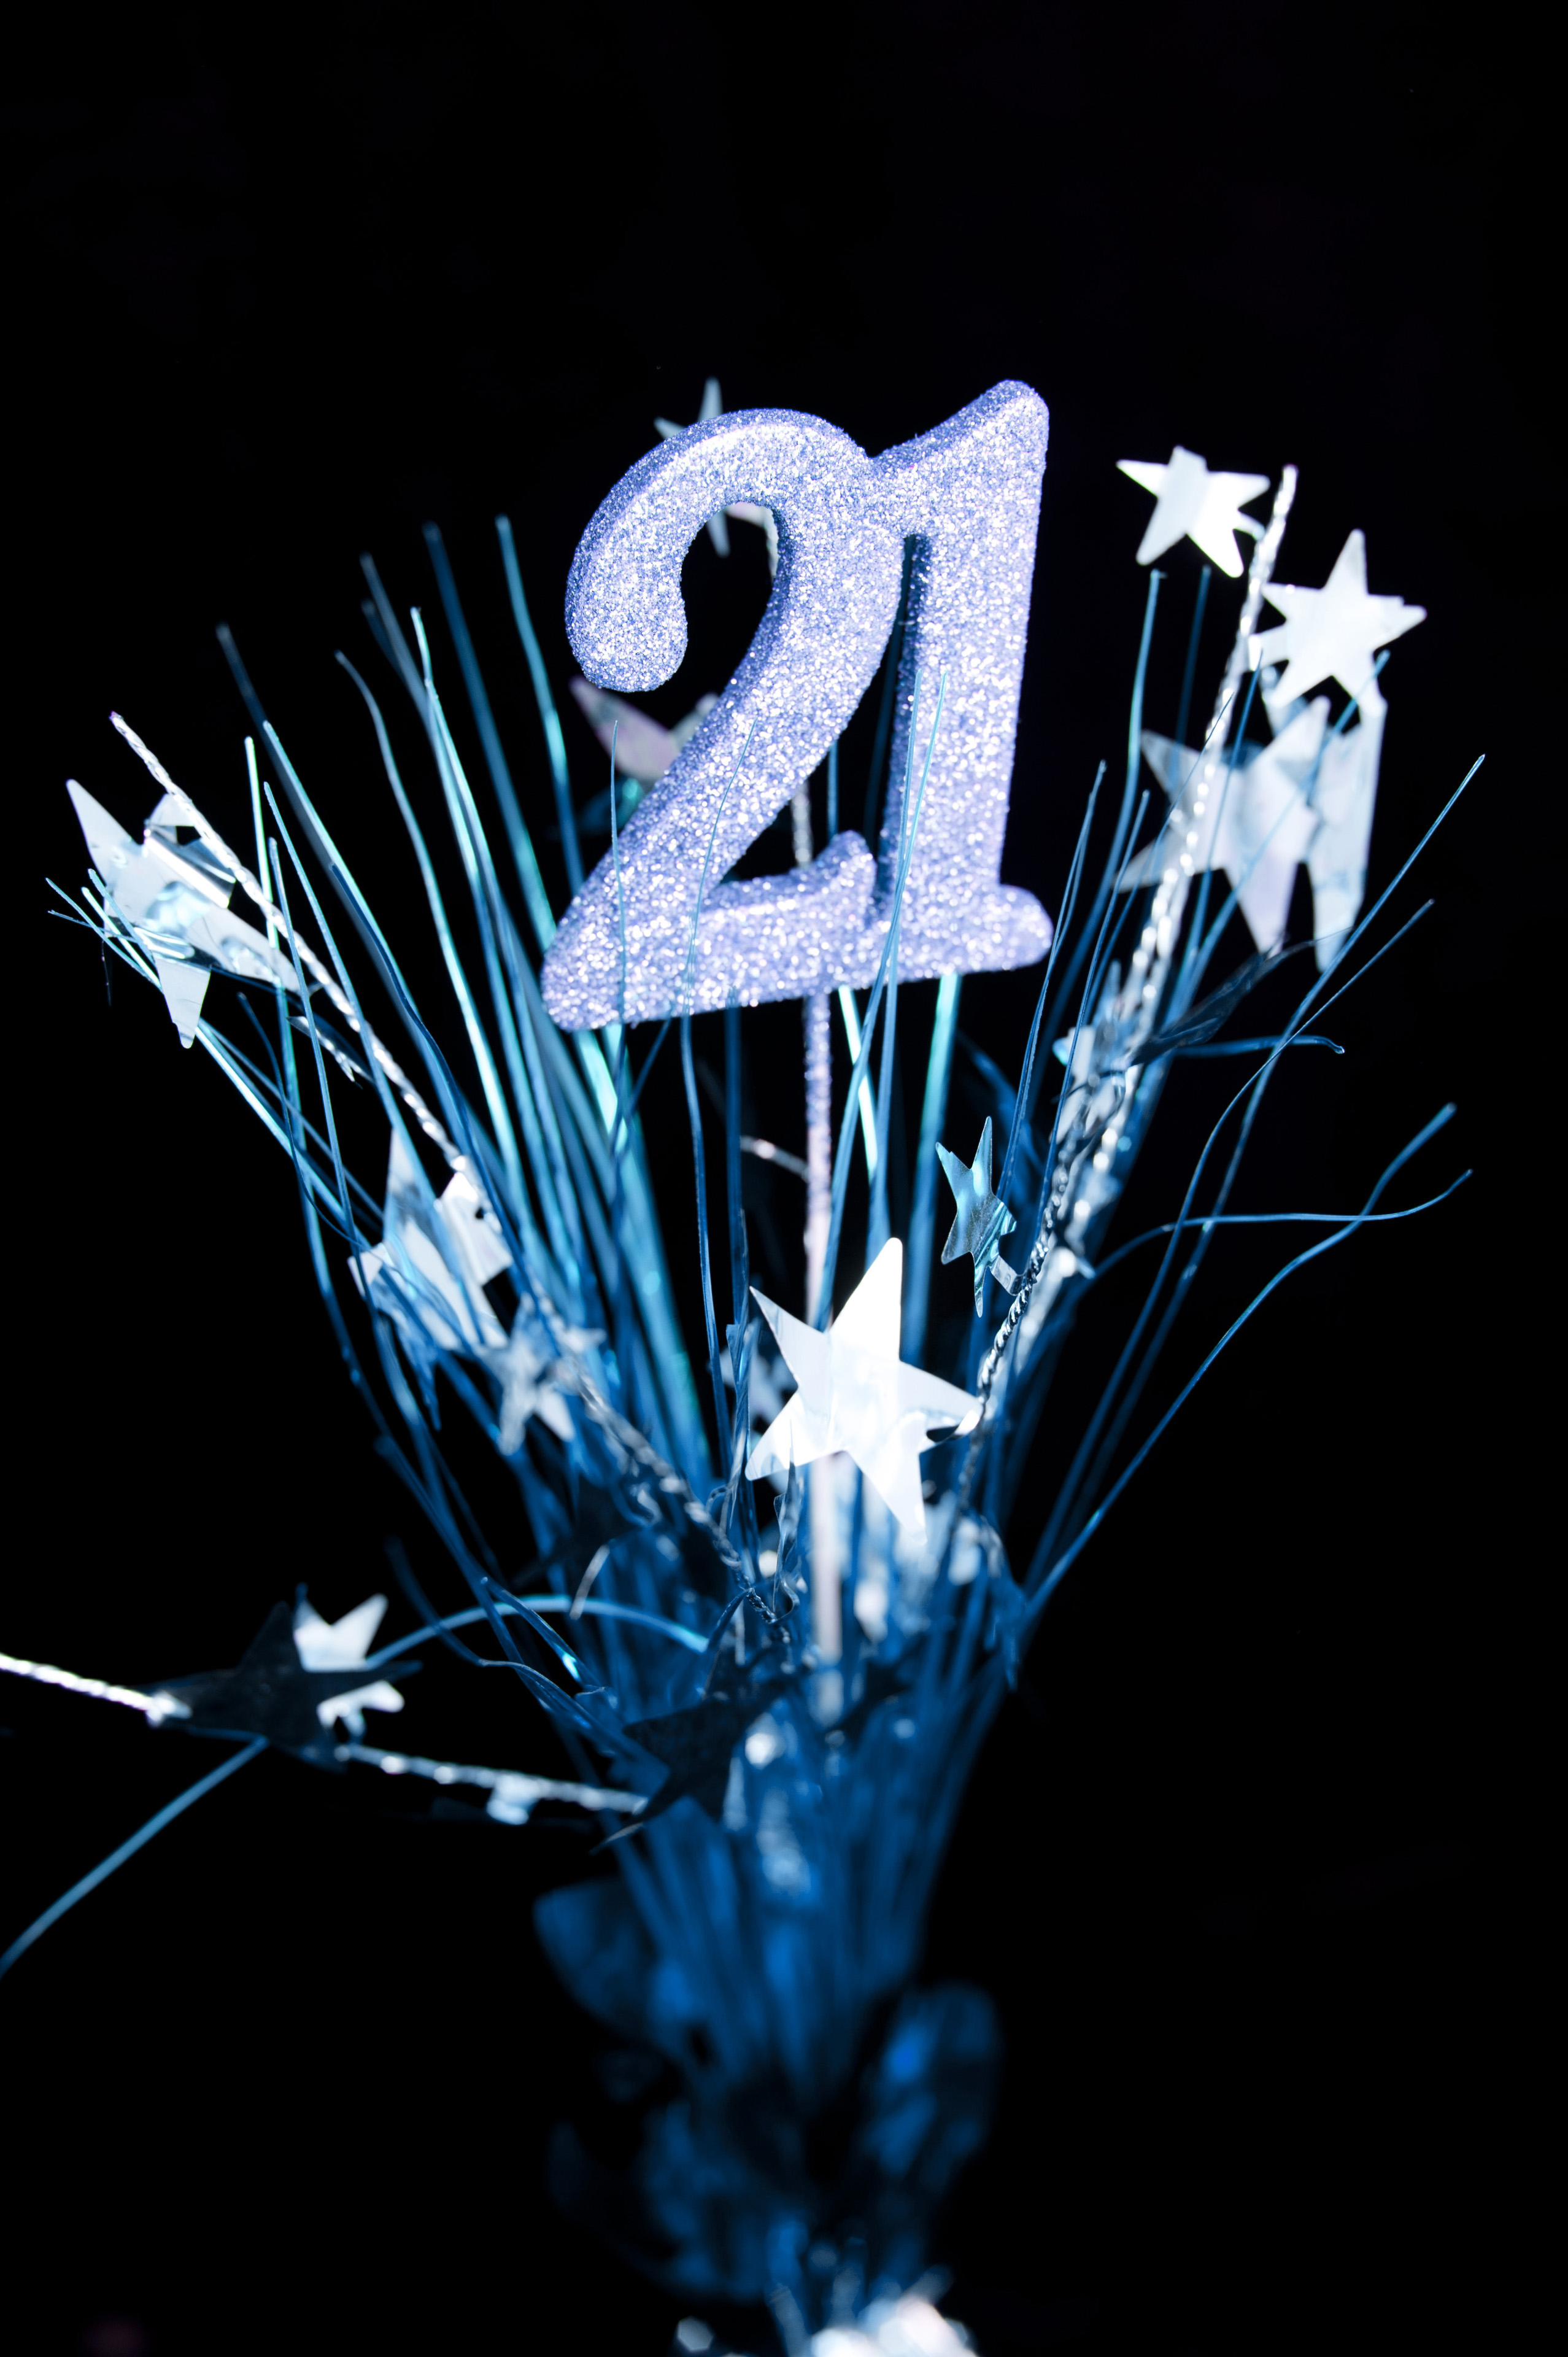 Image of 21st Birthday Party Concept Design | Freebie.Photography on